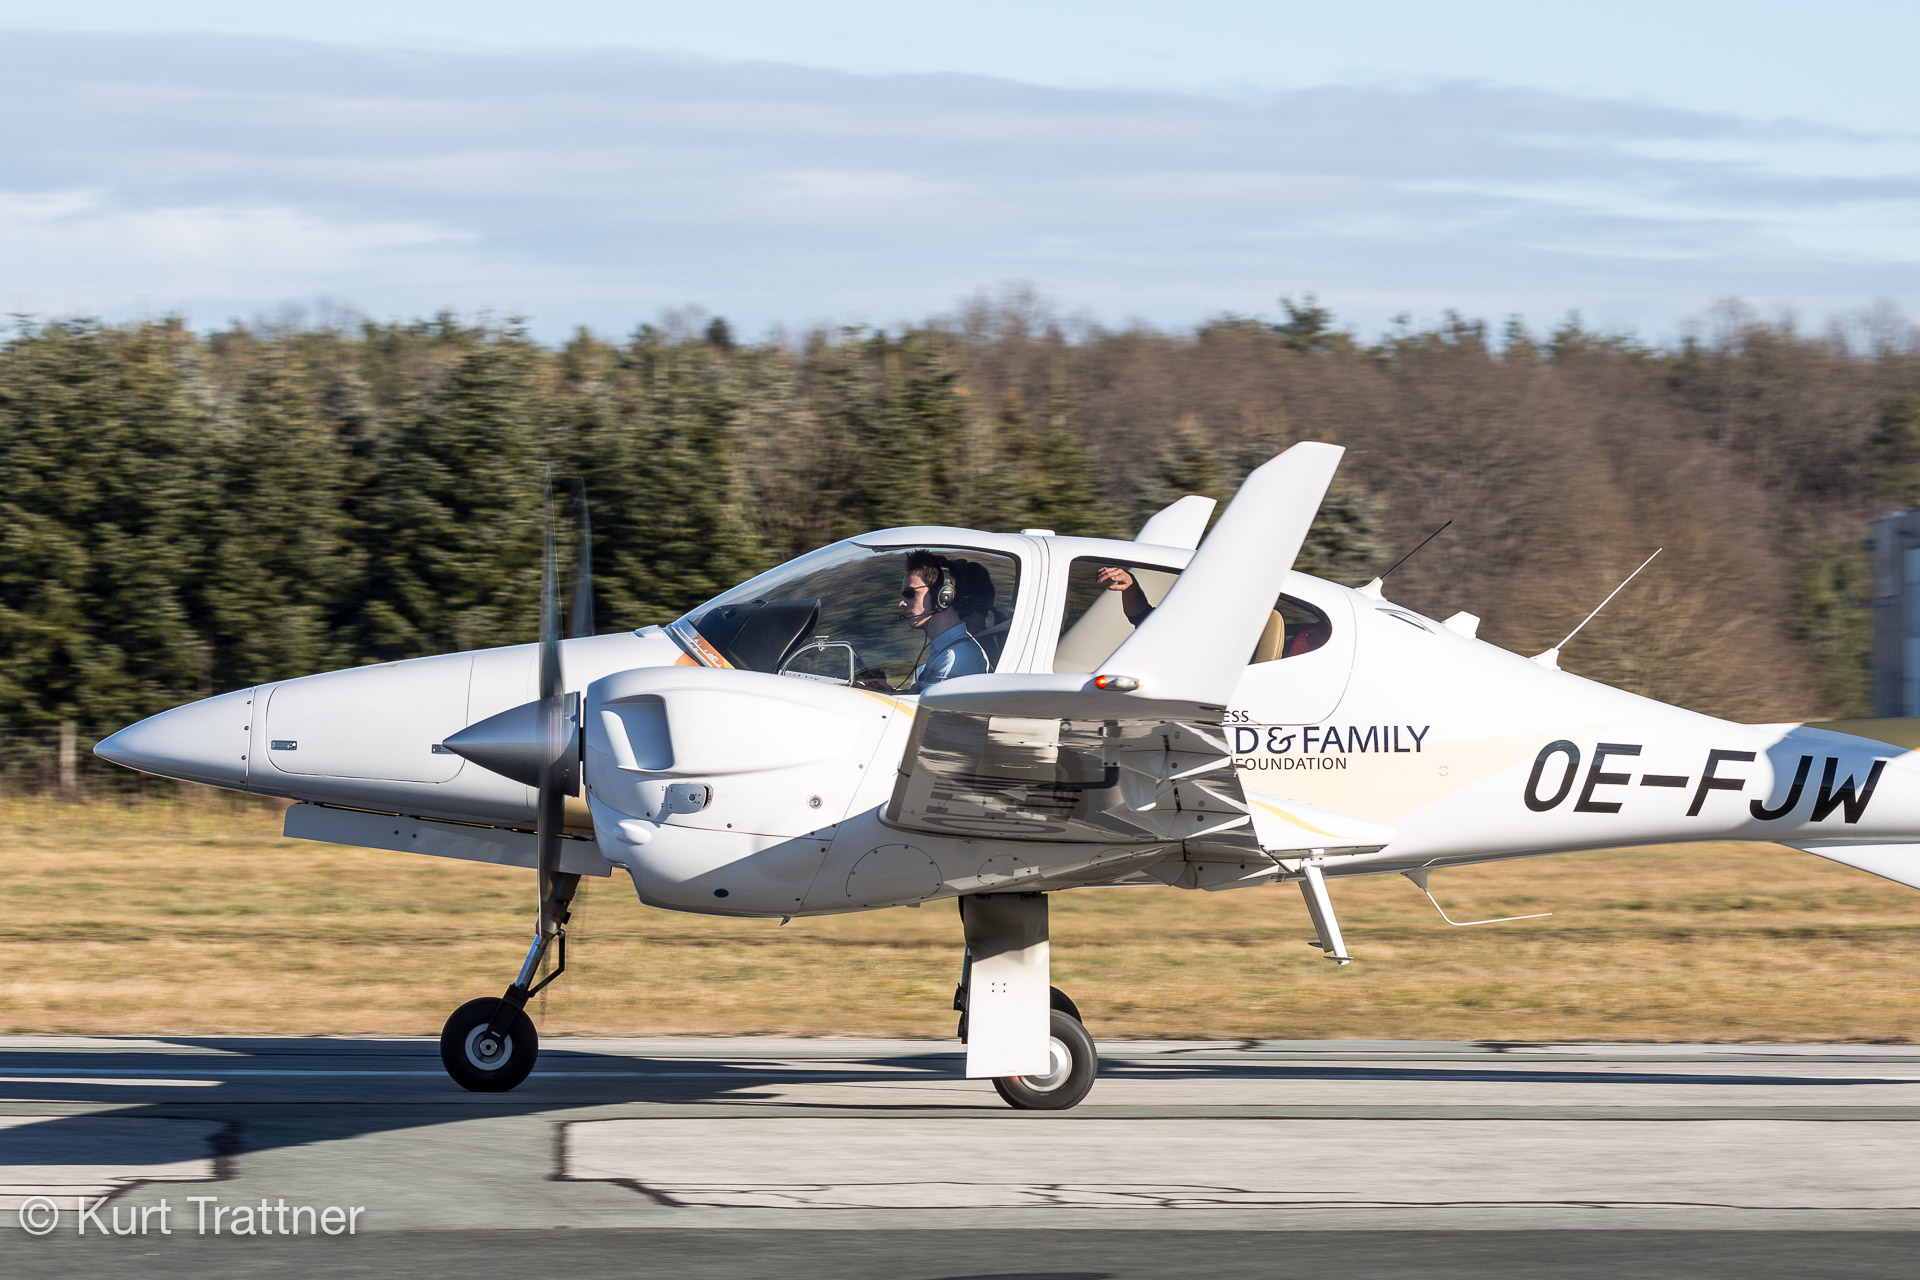 OE-FJW at LOGG on 31.12.2017